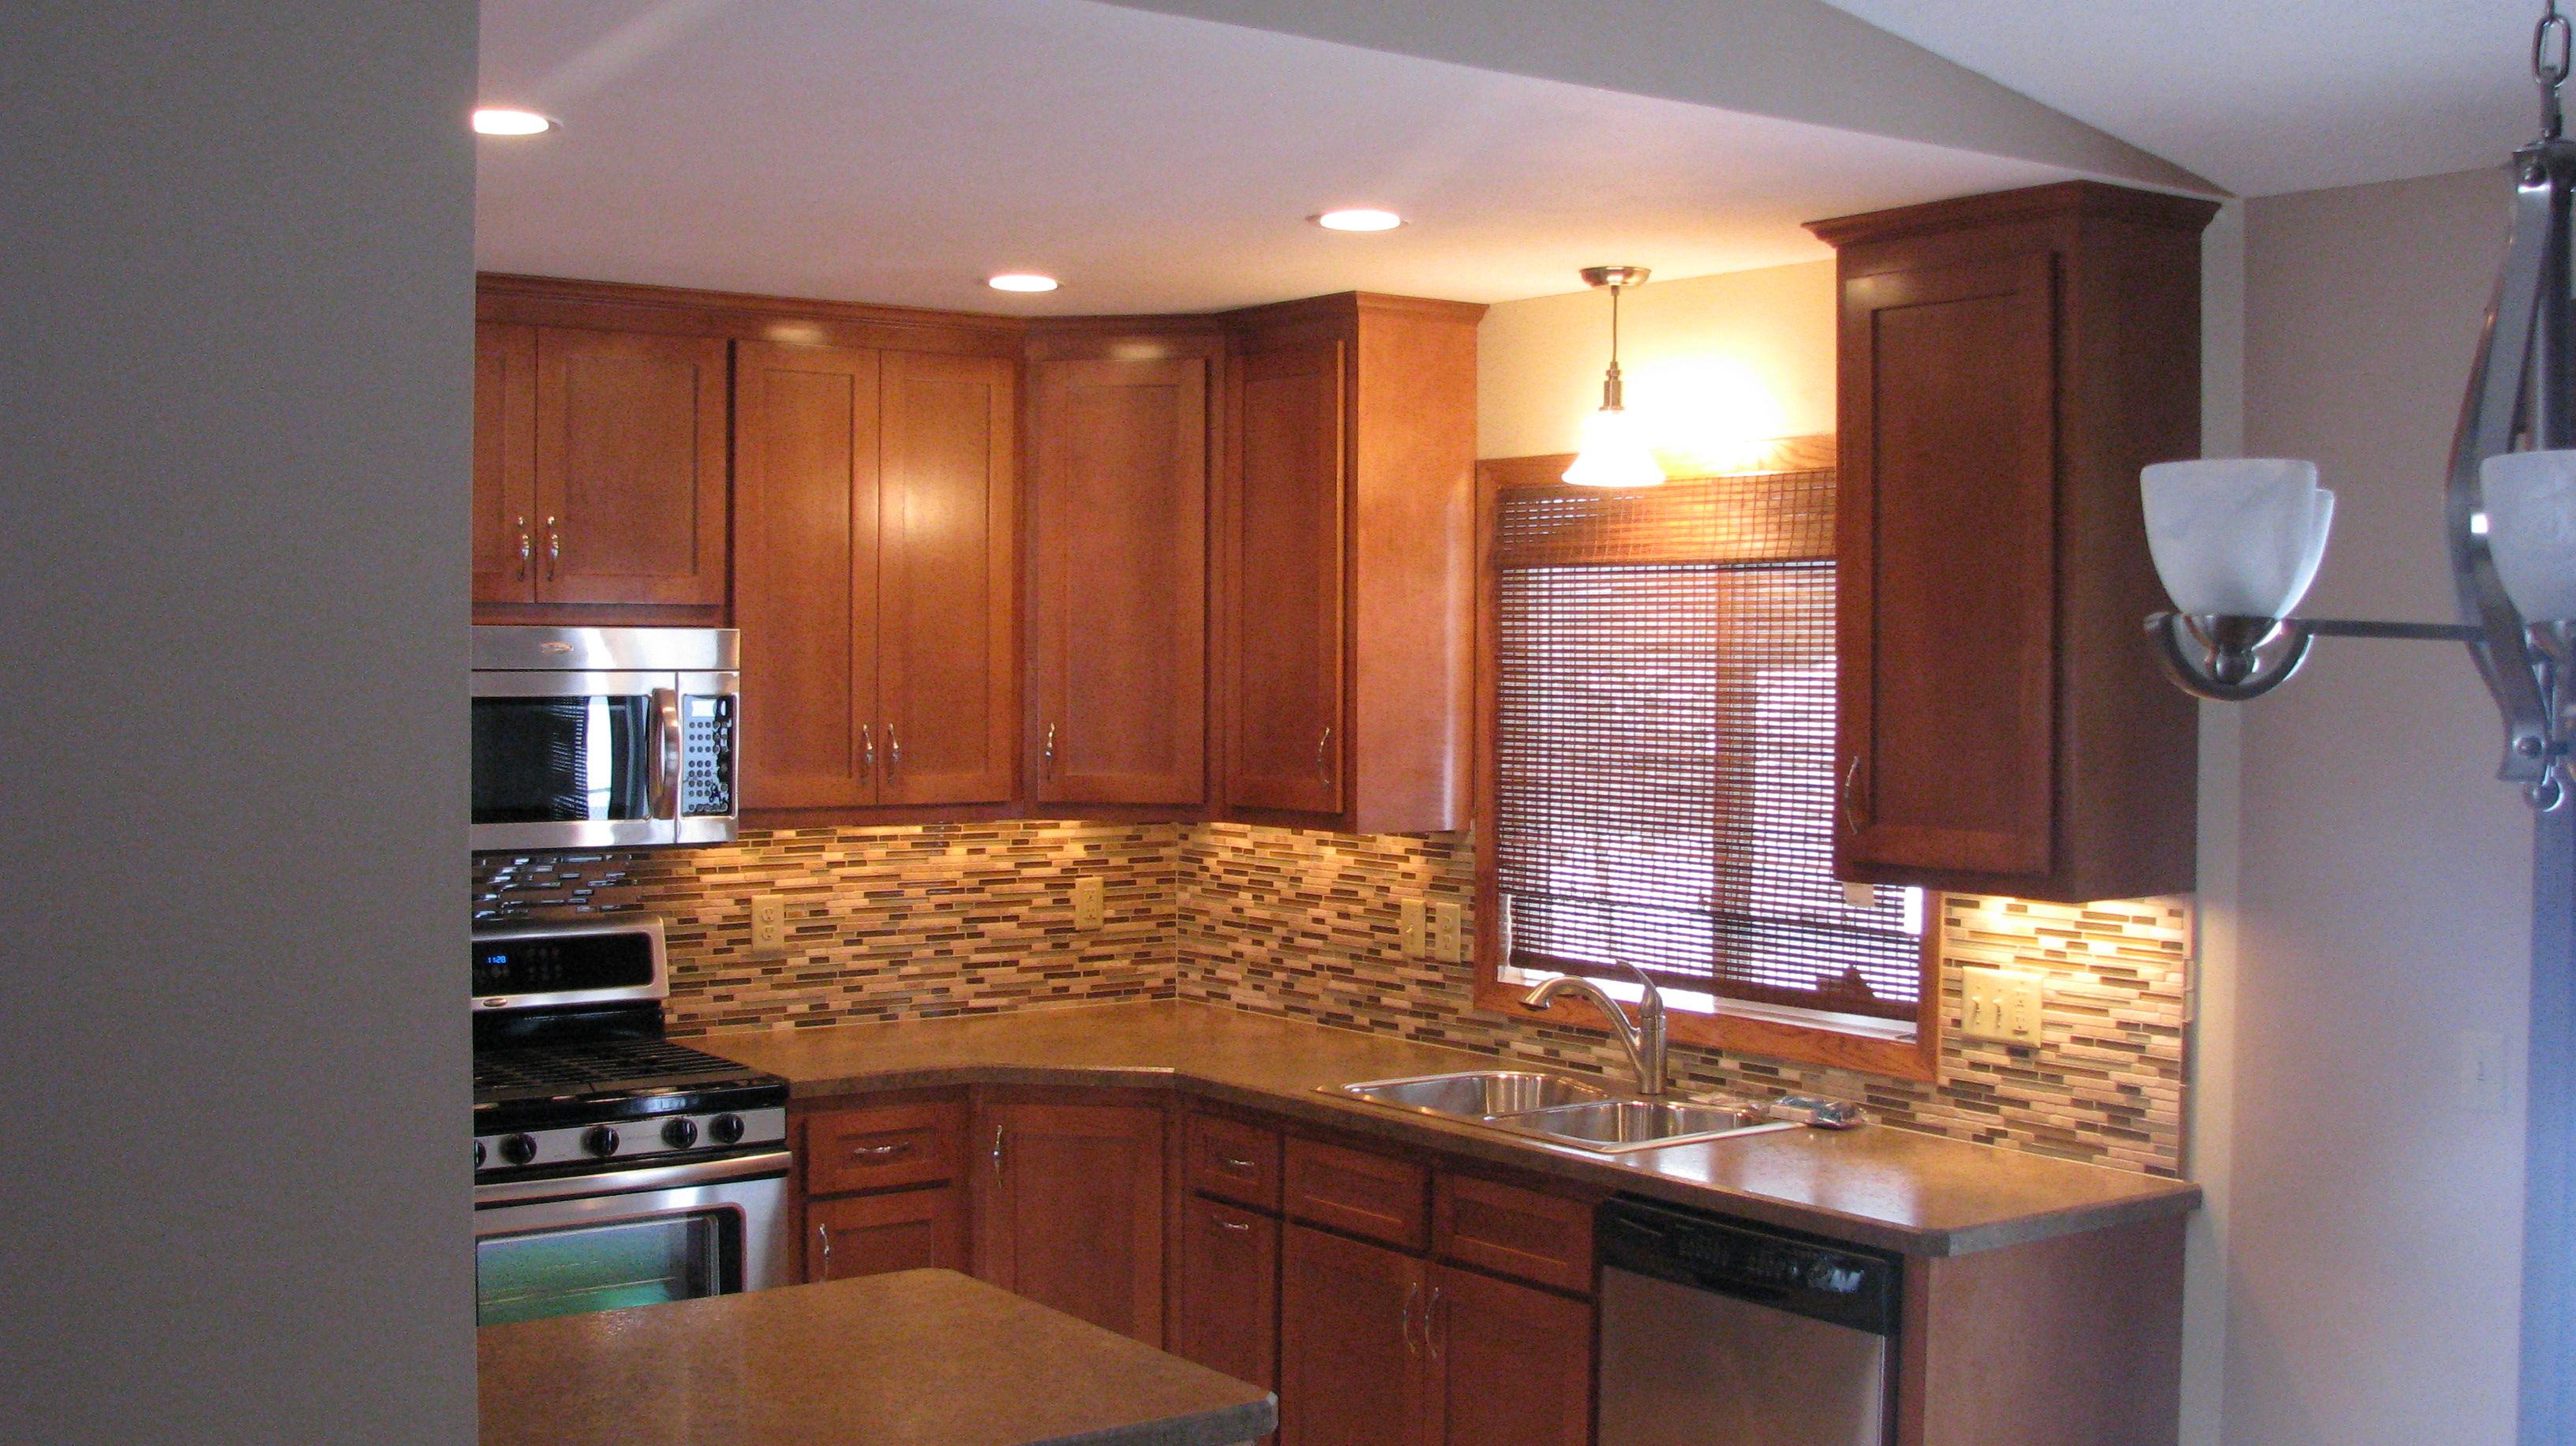 Split entry kitchen remodel remodeling kitchen for Kitchen renovation ideas photos